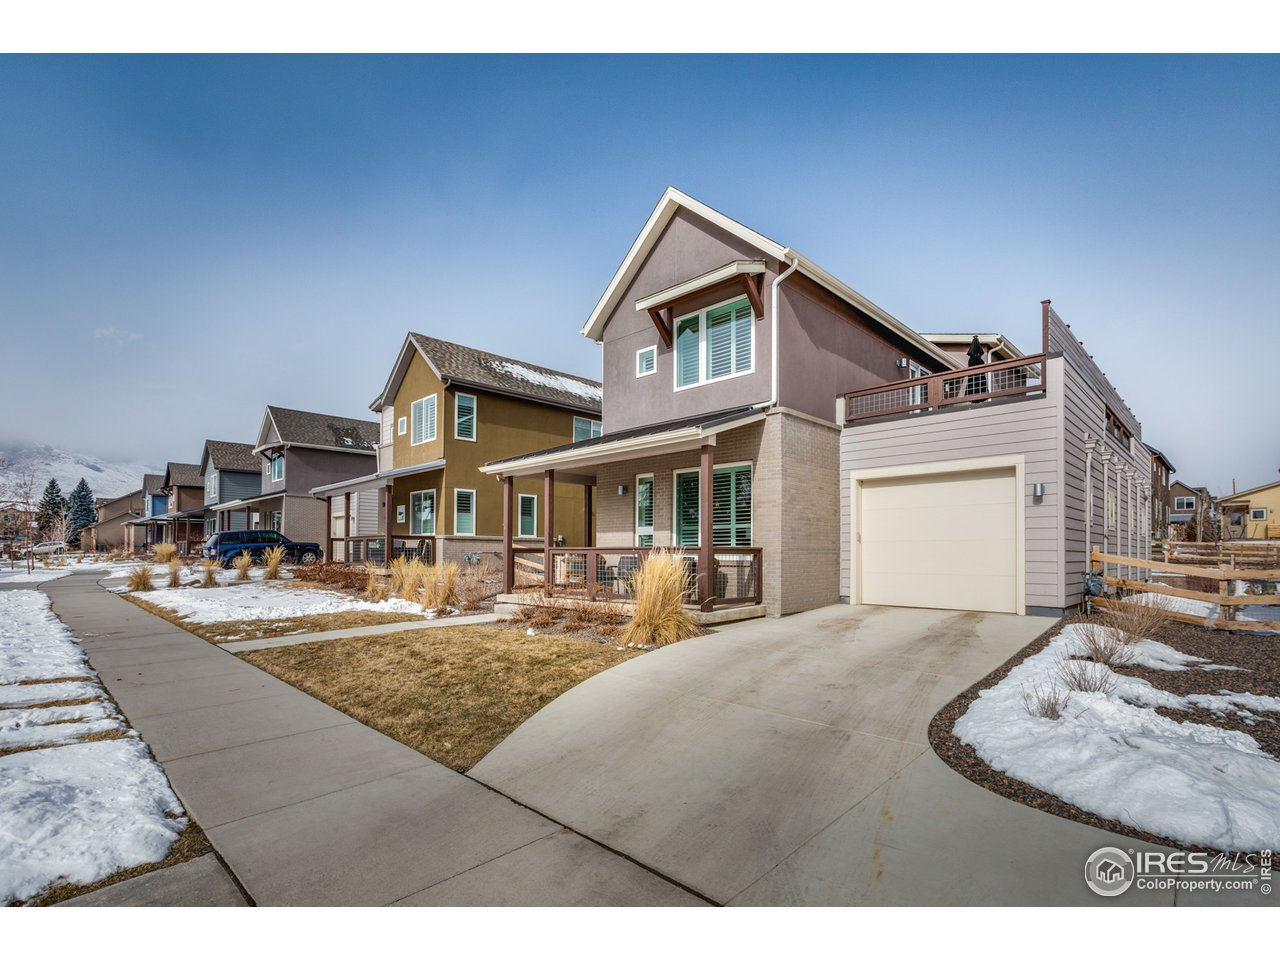 943 Yellow Pine Ave, Boulder CO 80304